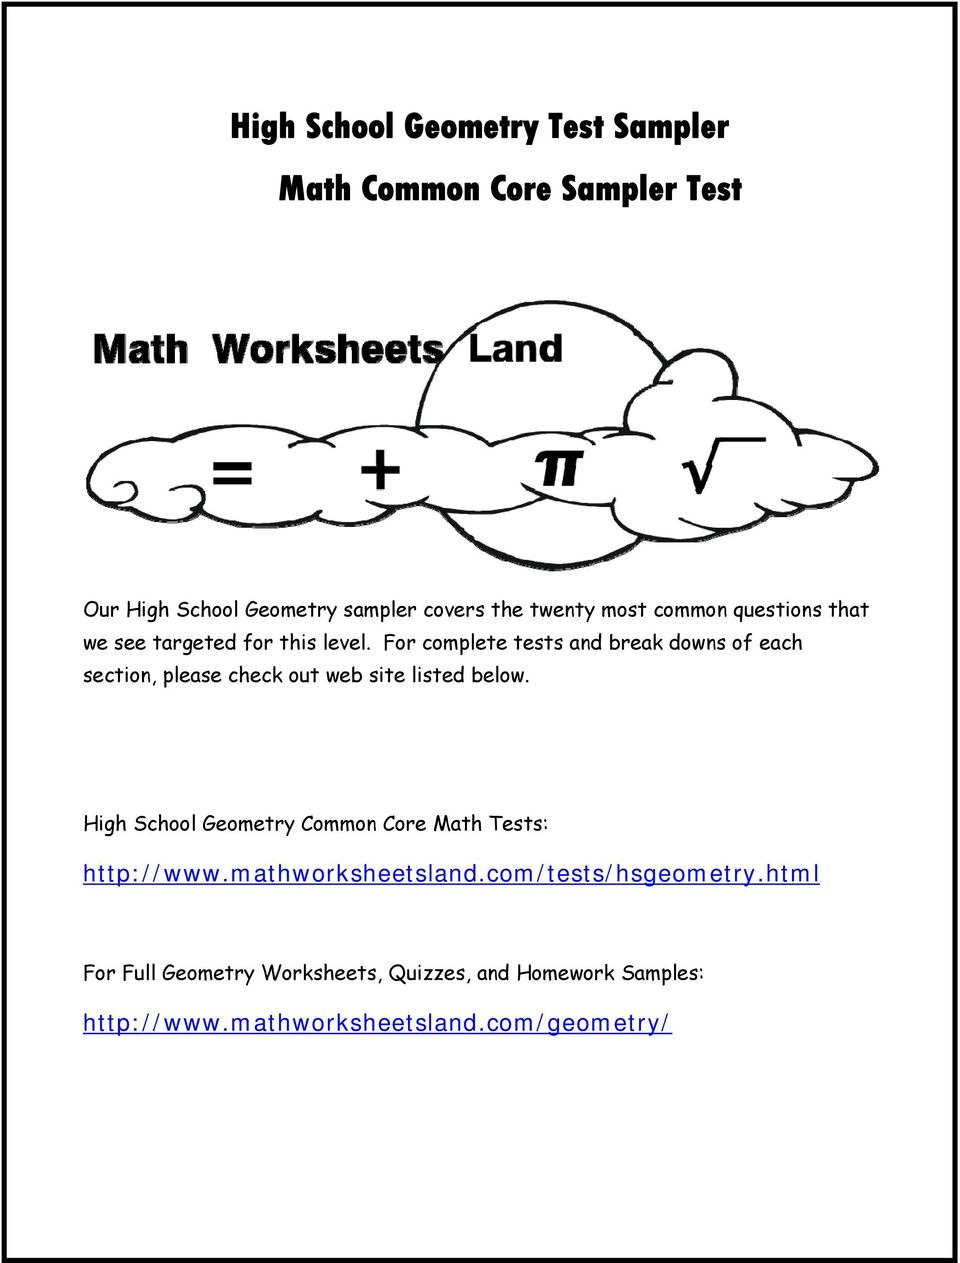 For complete tests and break downs of each section, please check out web site listed below.